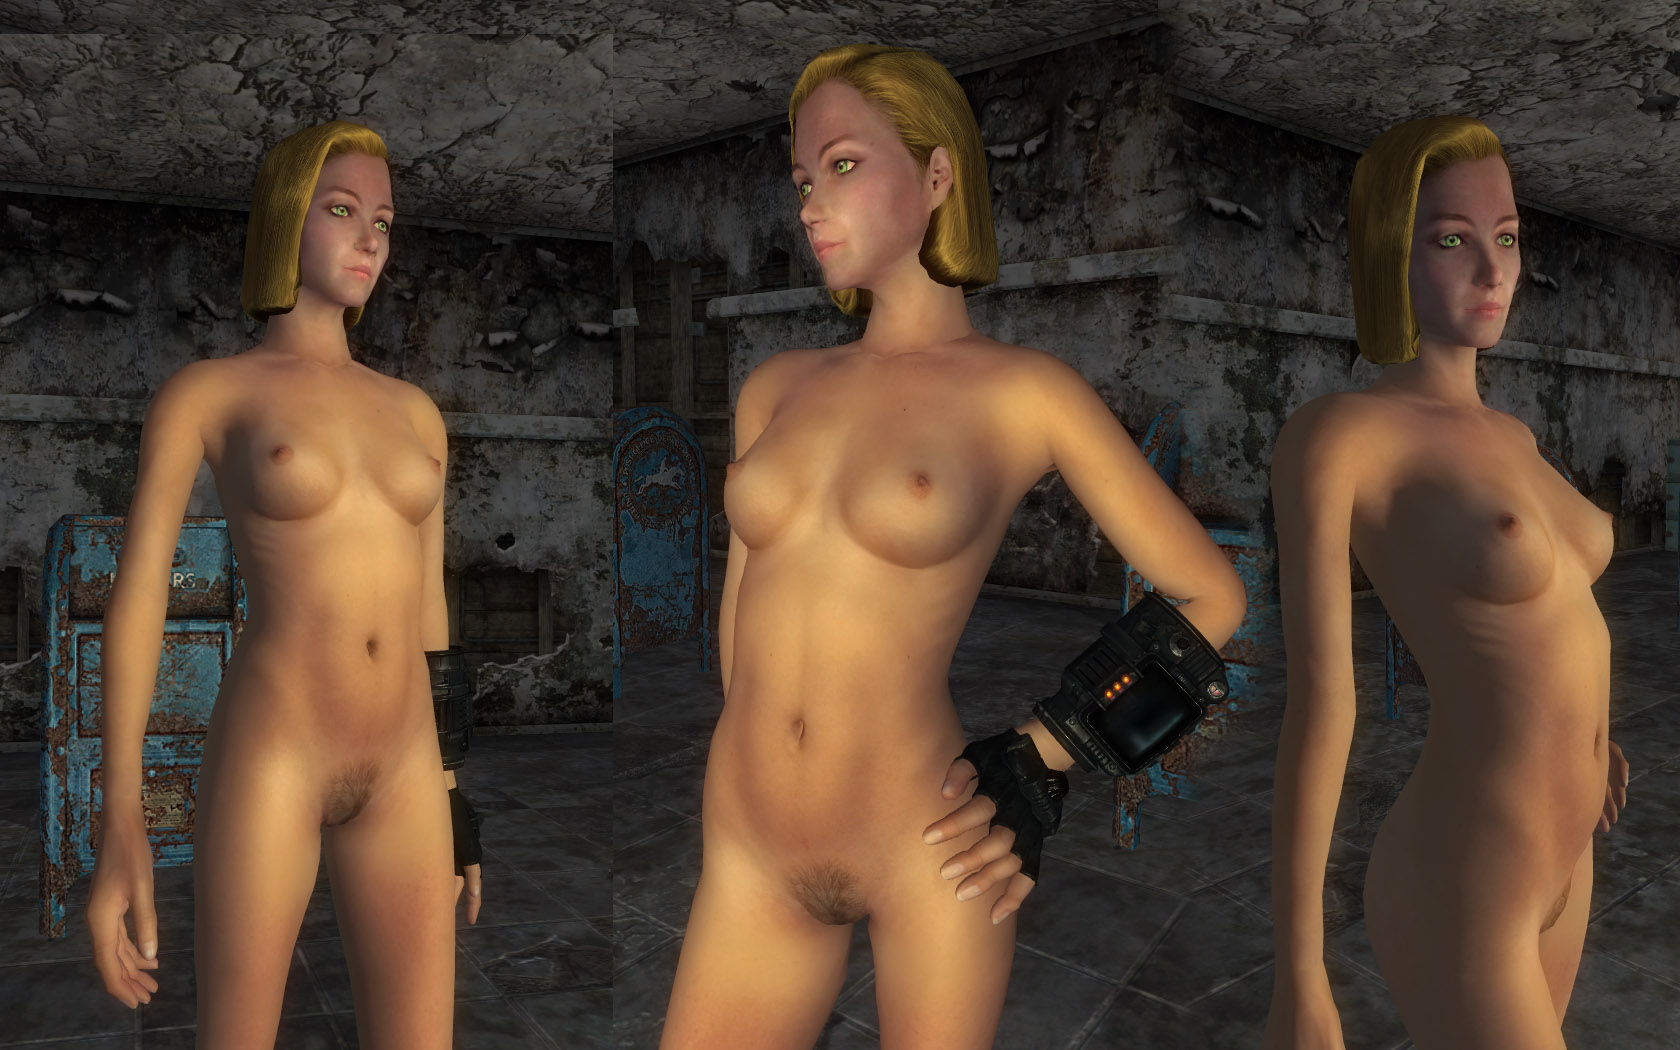 Fallout 3 nude girls mod uncensored porncraft clip